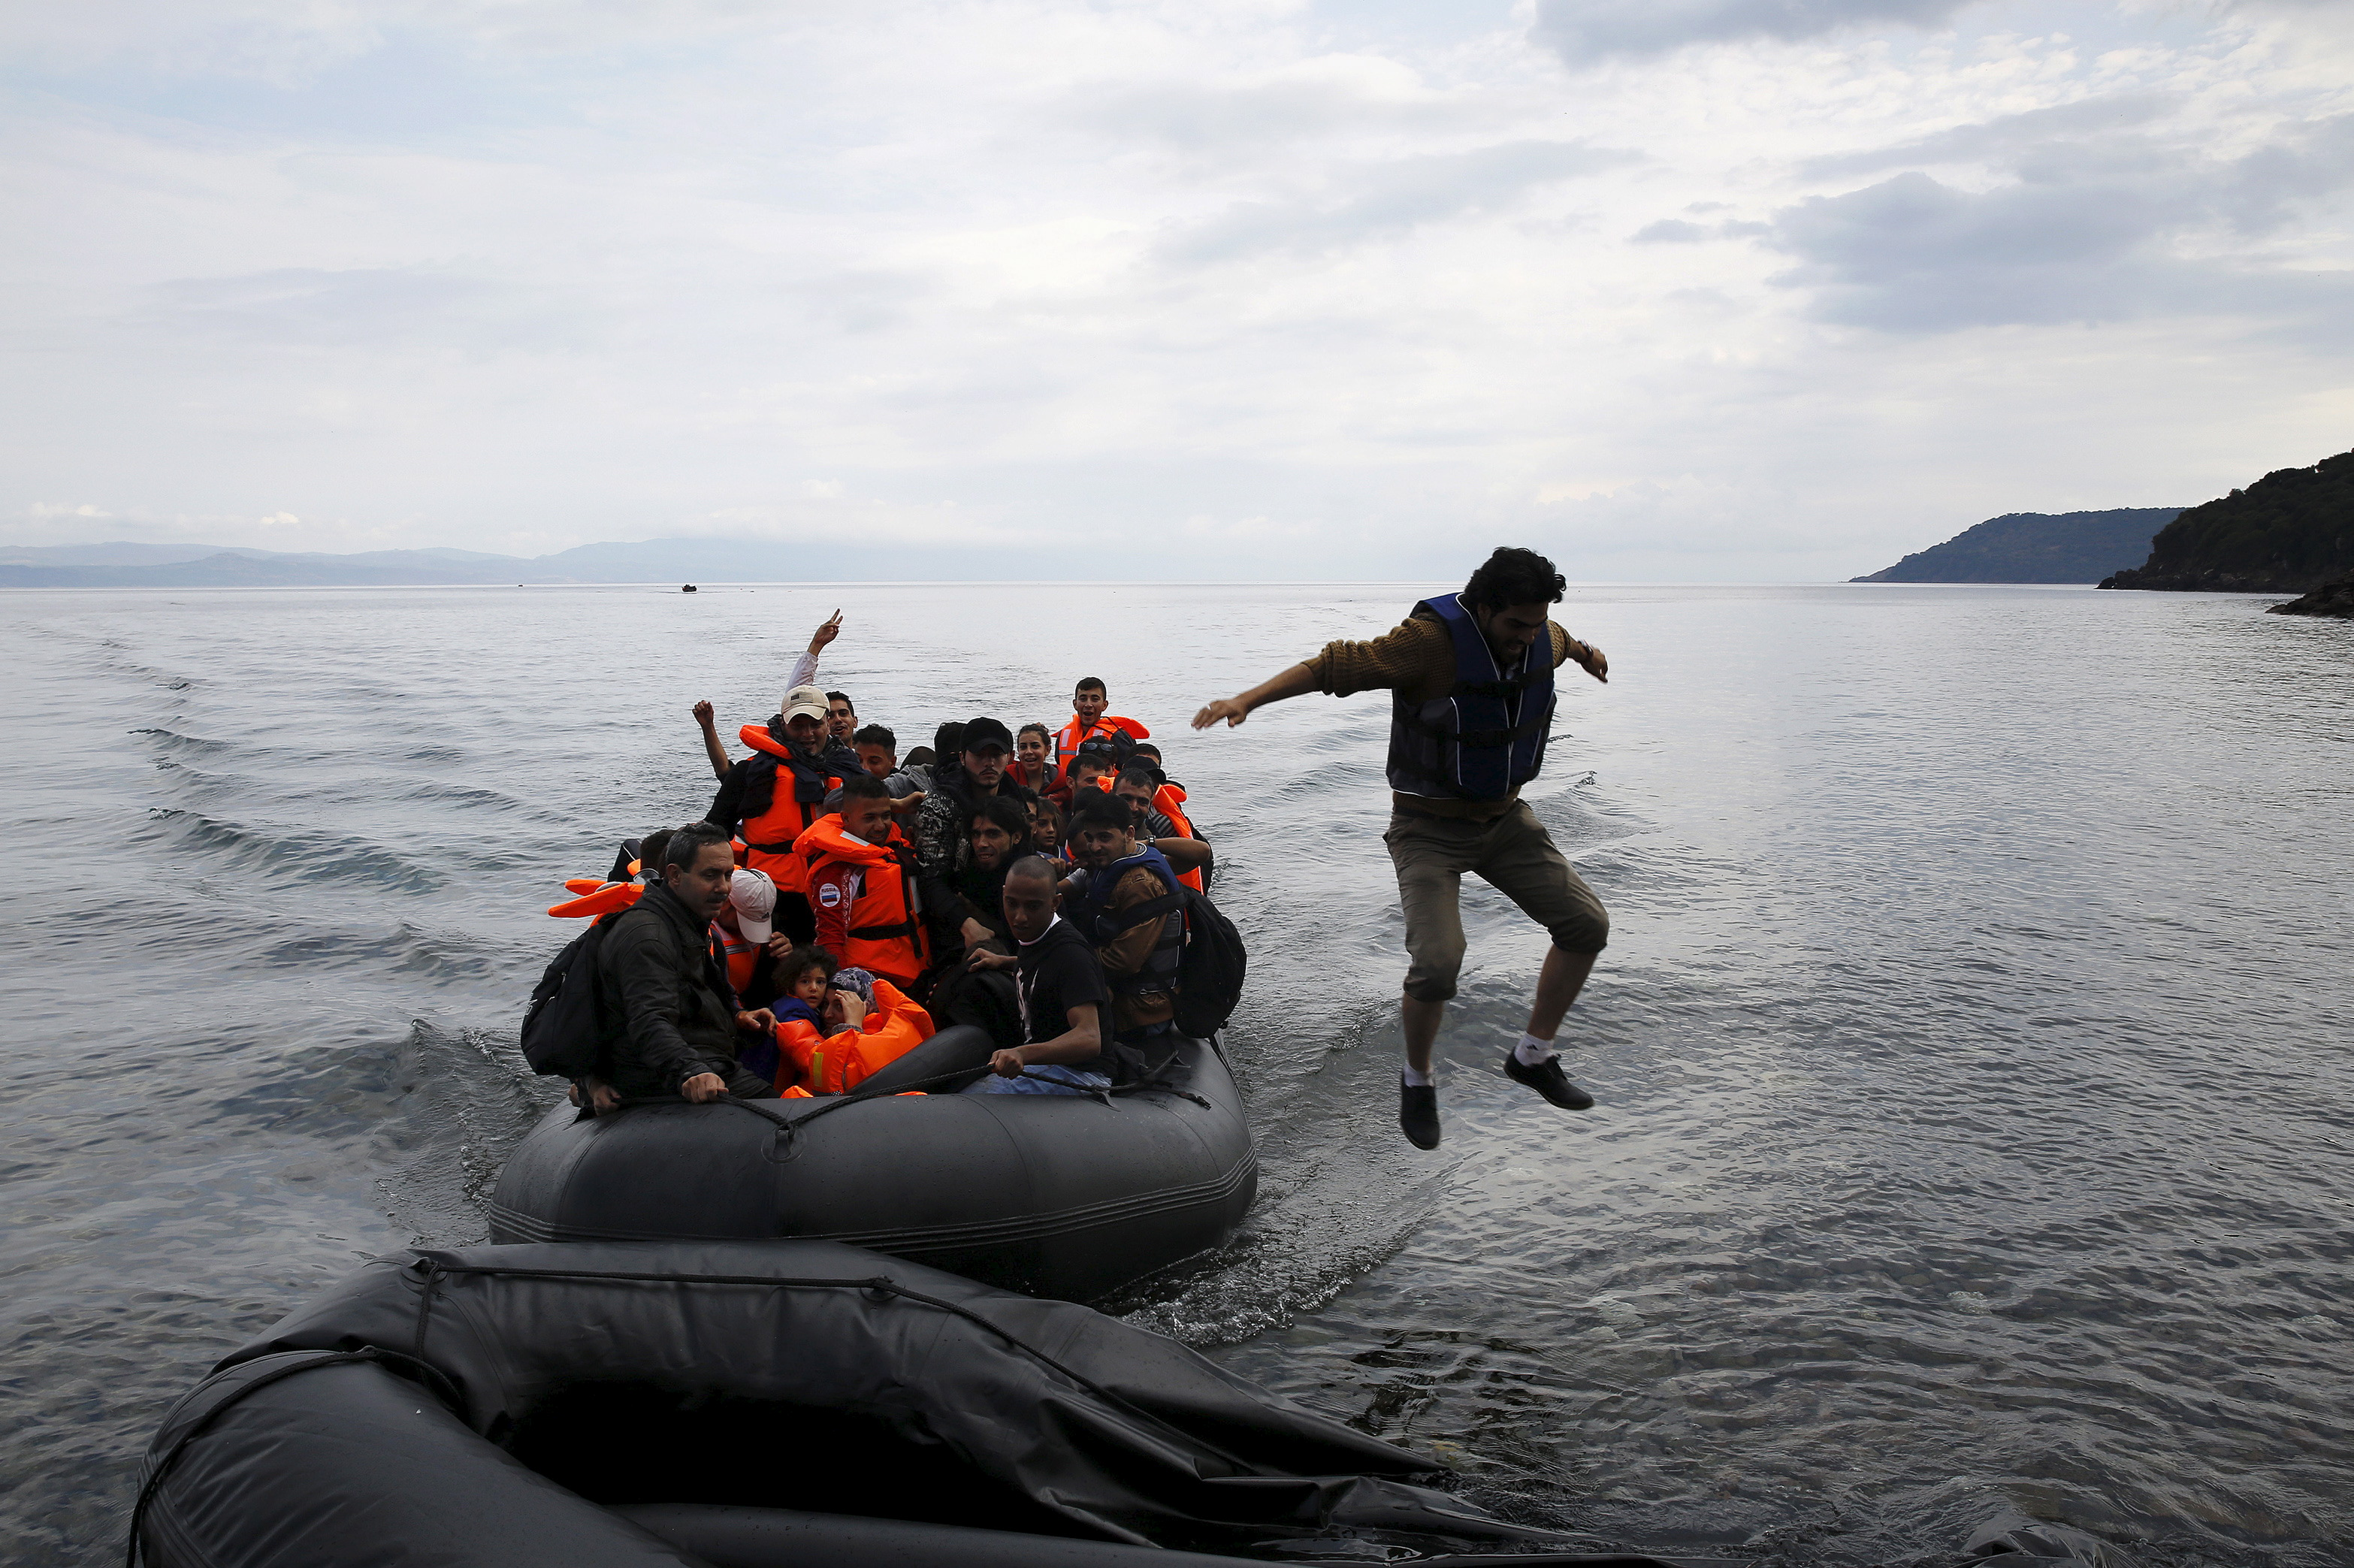 A migrant jumps off an overcrowded dinghy upon arriving in the Greek island of Lesbos, after crossing a part of the Aegean Sea from Turkey to Lesbos September 24, 2015.  REUTERS/Yannis Behrakis  - RTX1S91V